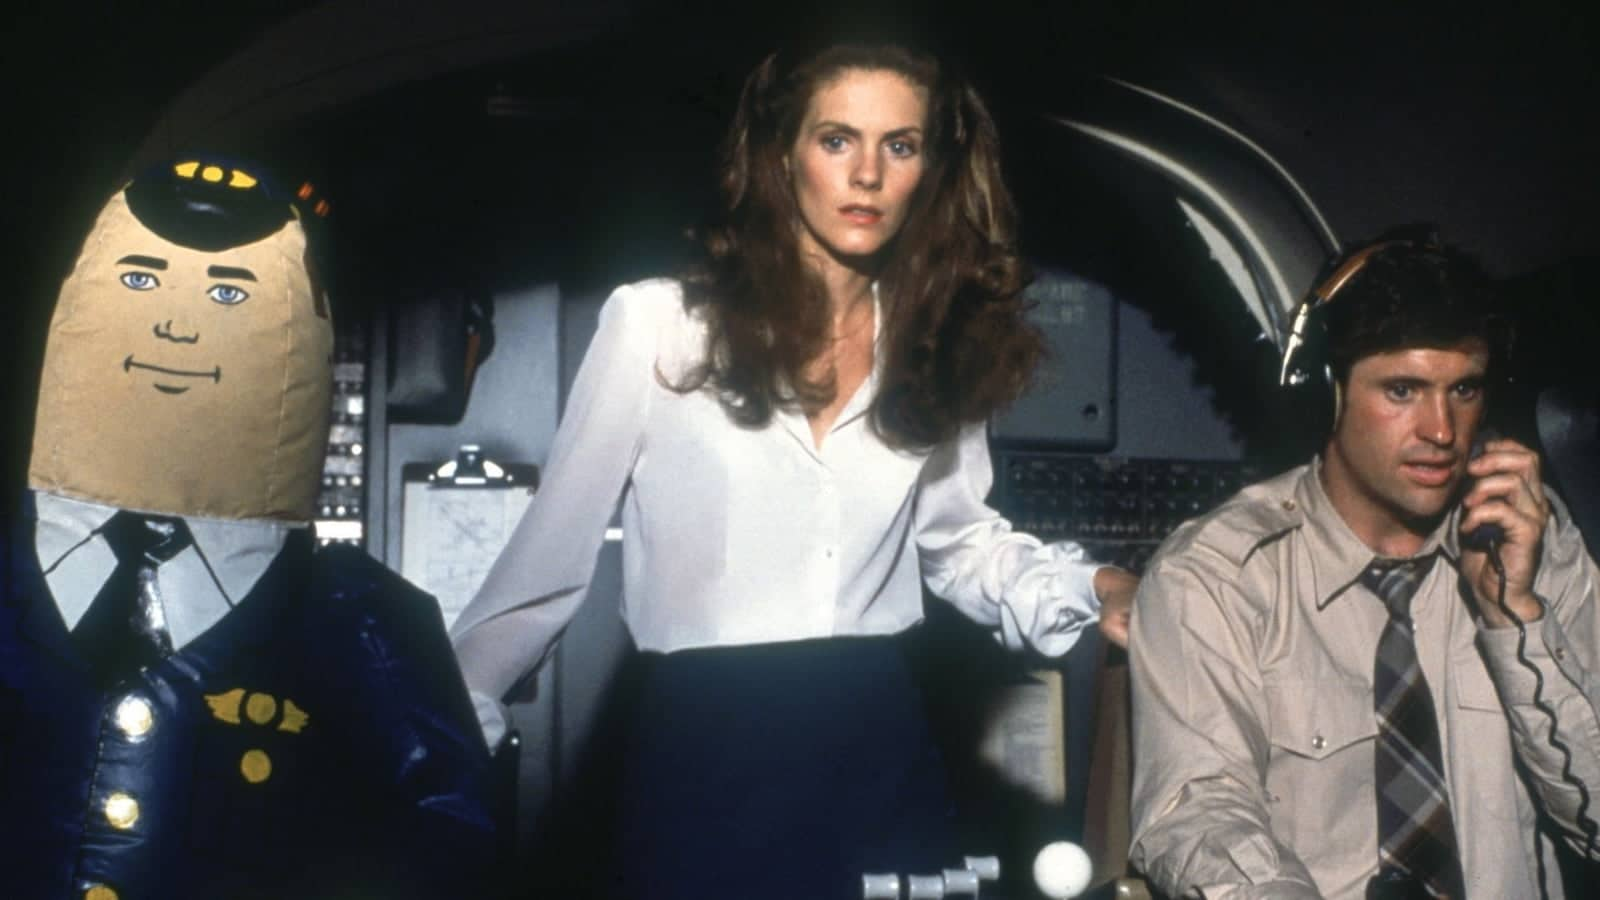 Best Comedy Movies of all time - Airplane - David Zucker - Jim Abrahams - StudioBinder